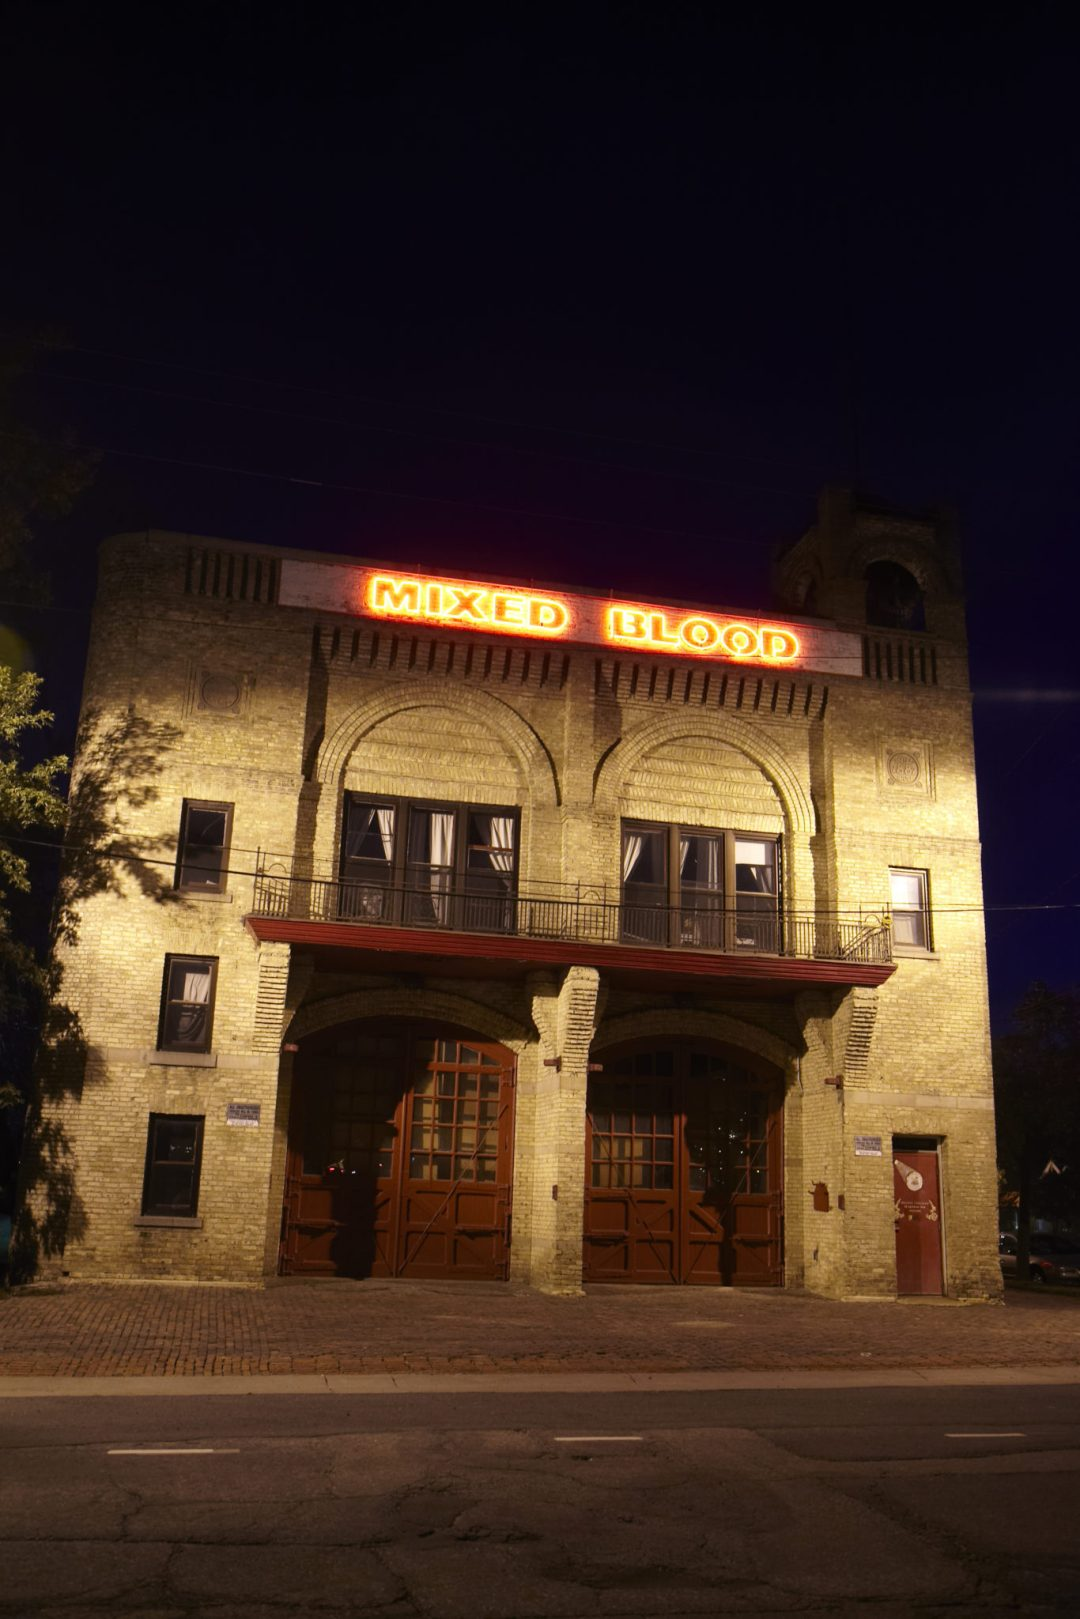 Mixed Blood Theatre. Image by Todd Buchanan